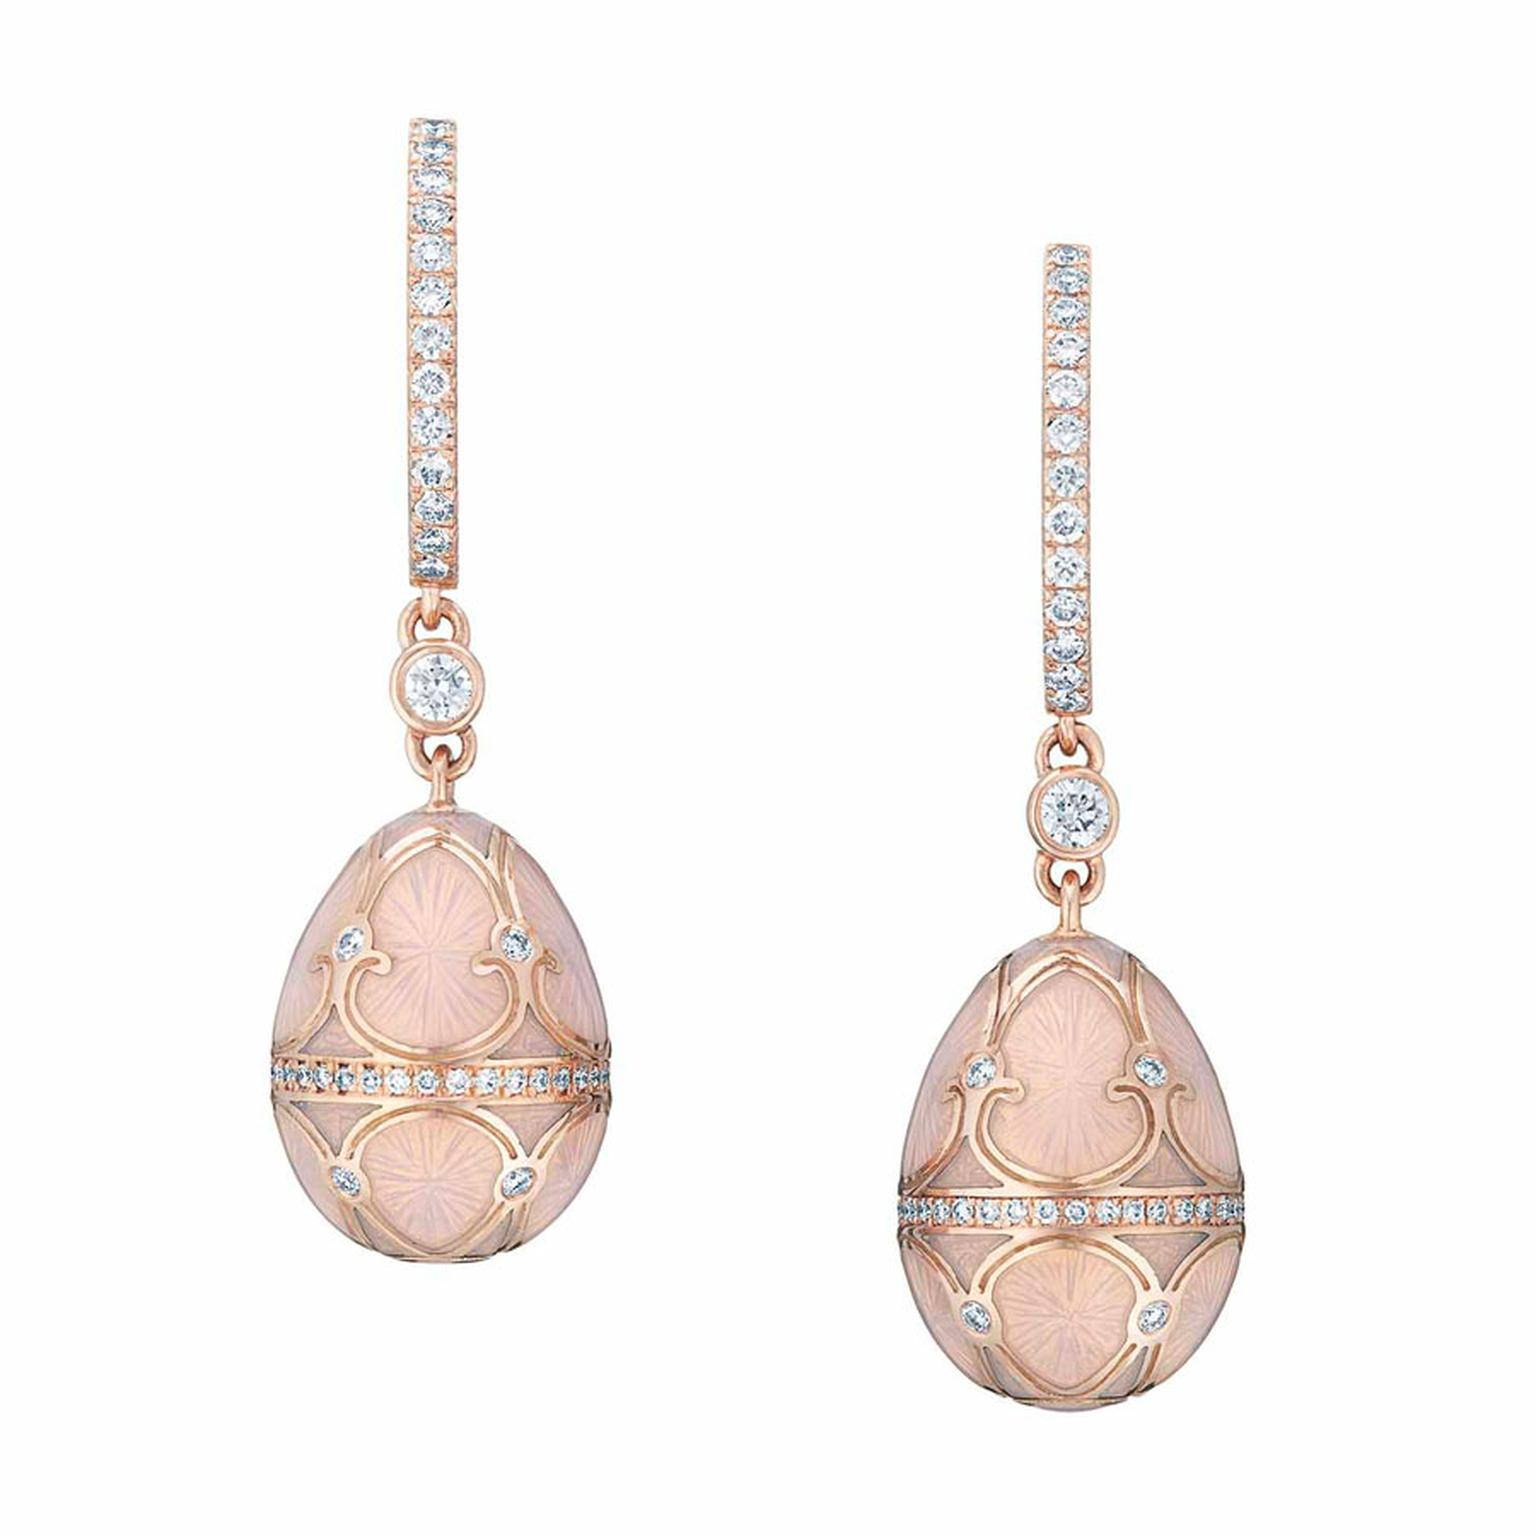 Faberge-Tsarskoye-Selo-Pave-Earrings-Poudre